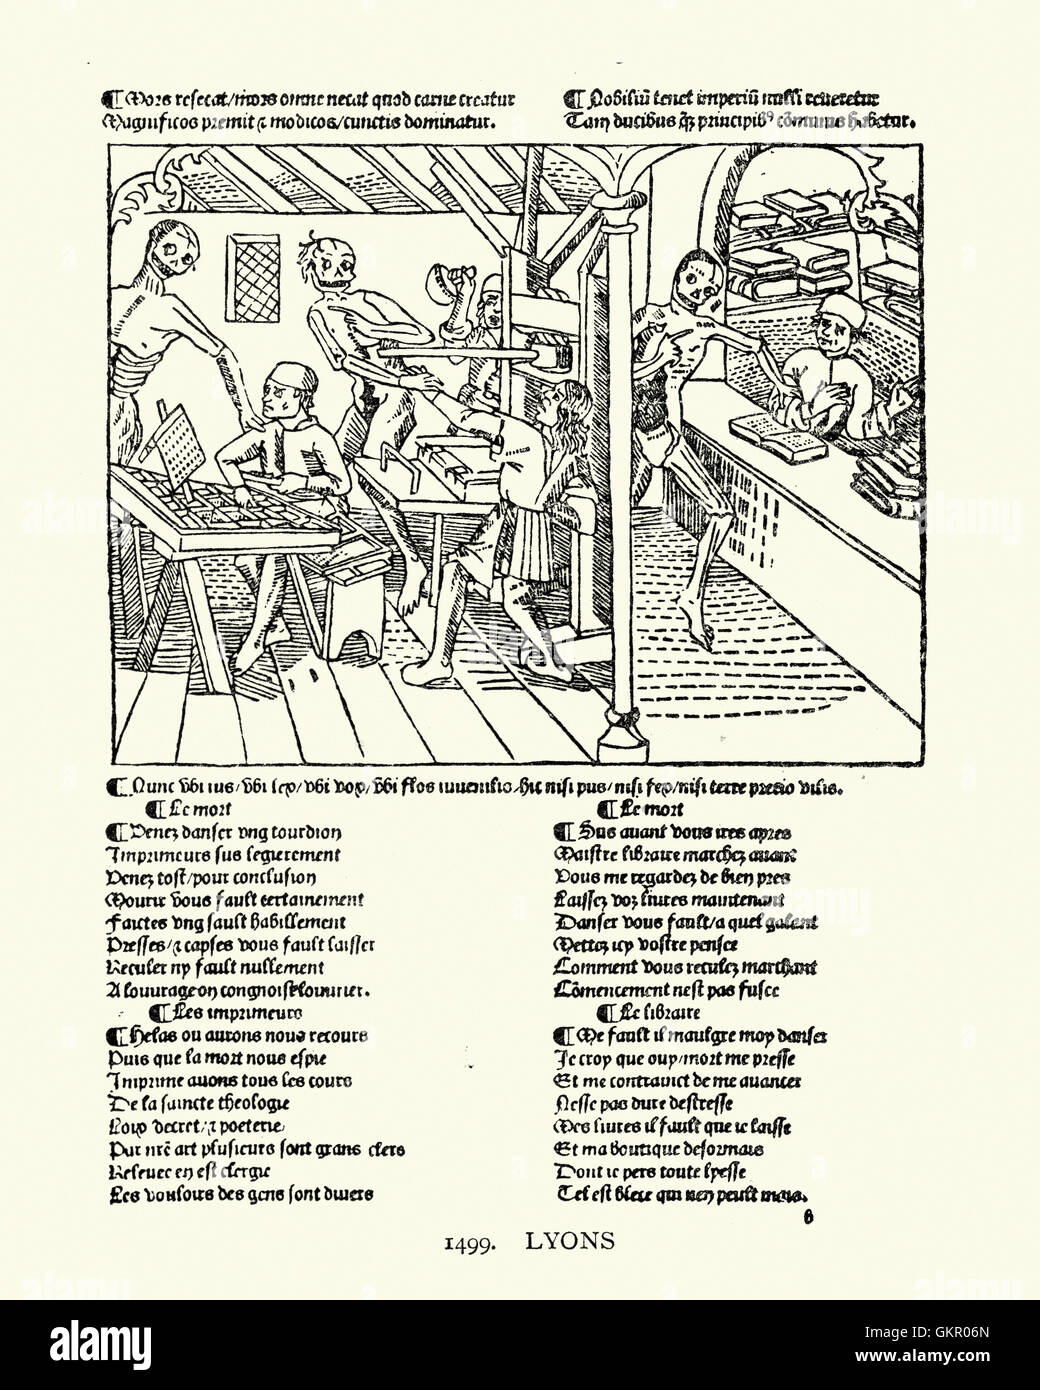 Woodcut of a Printing office from the Dance of Death, 1499 - Stock Image